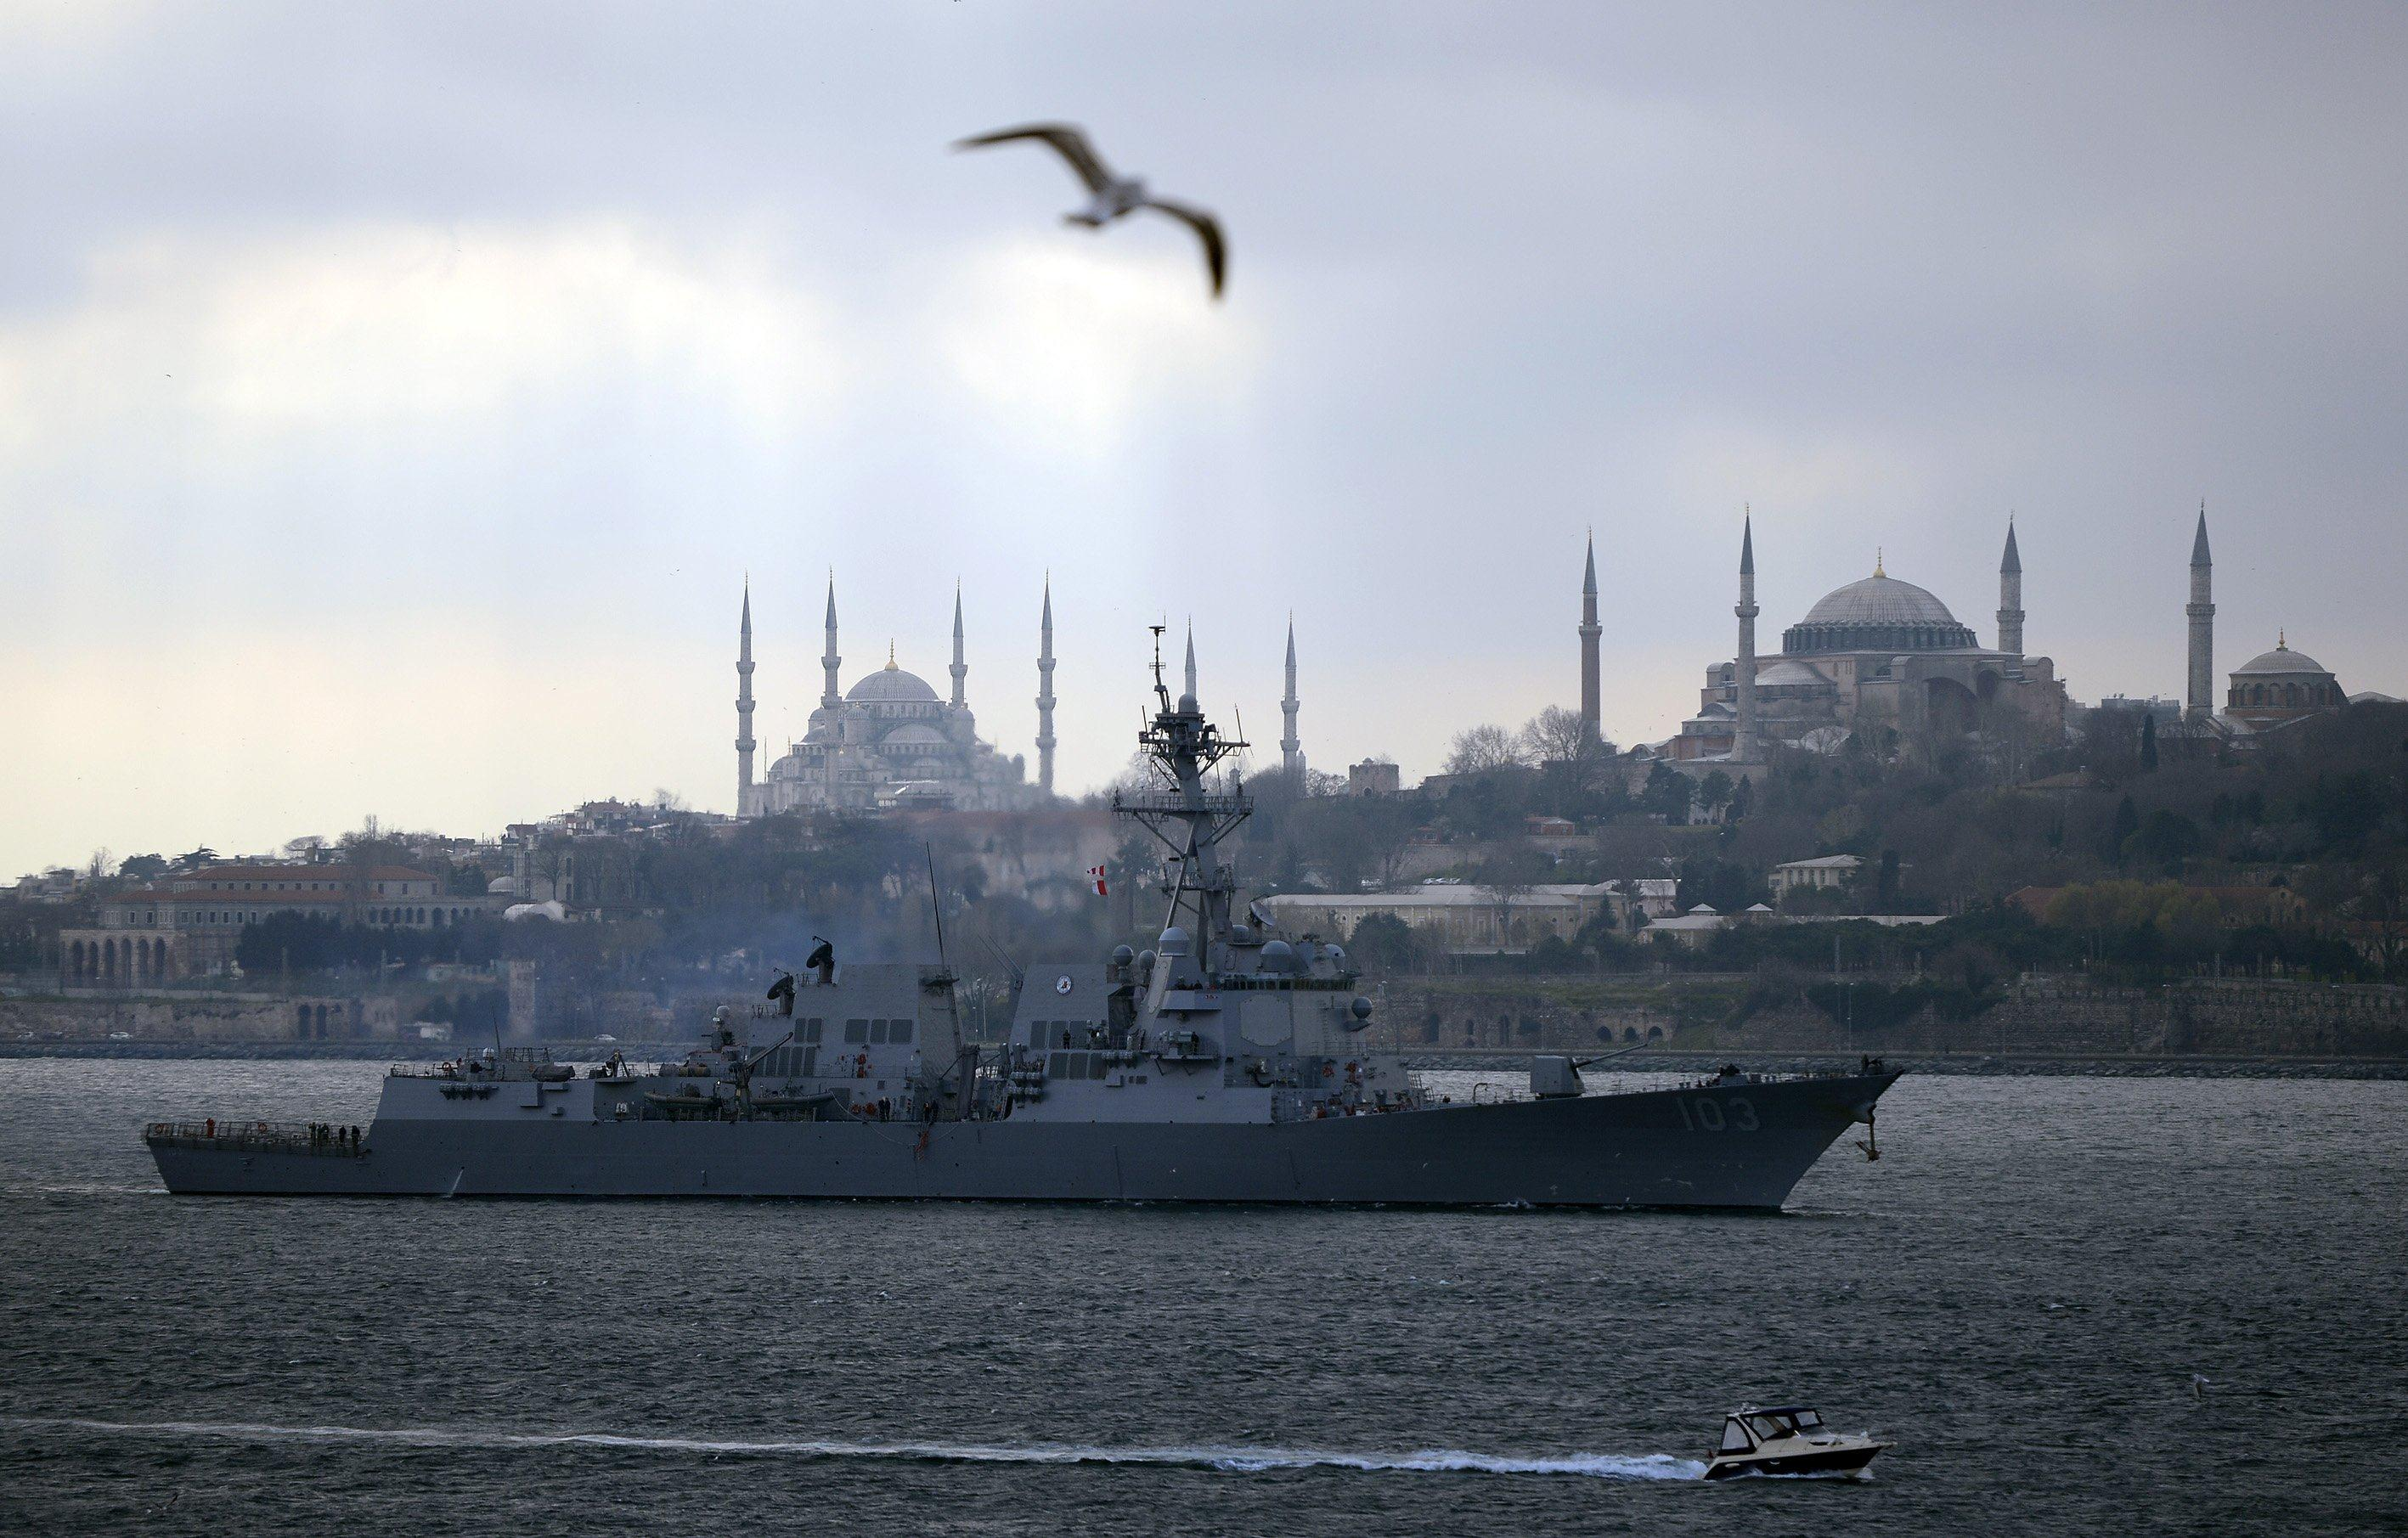 Image: The U.S.S. Truxtun destroyer passes the Istanbul Bosphorus